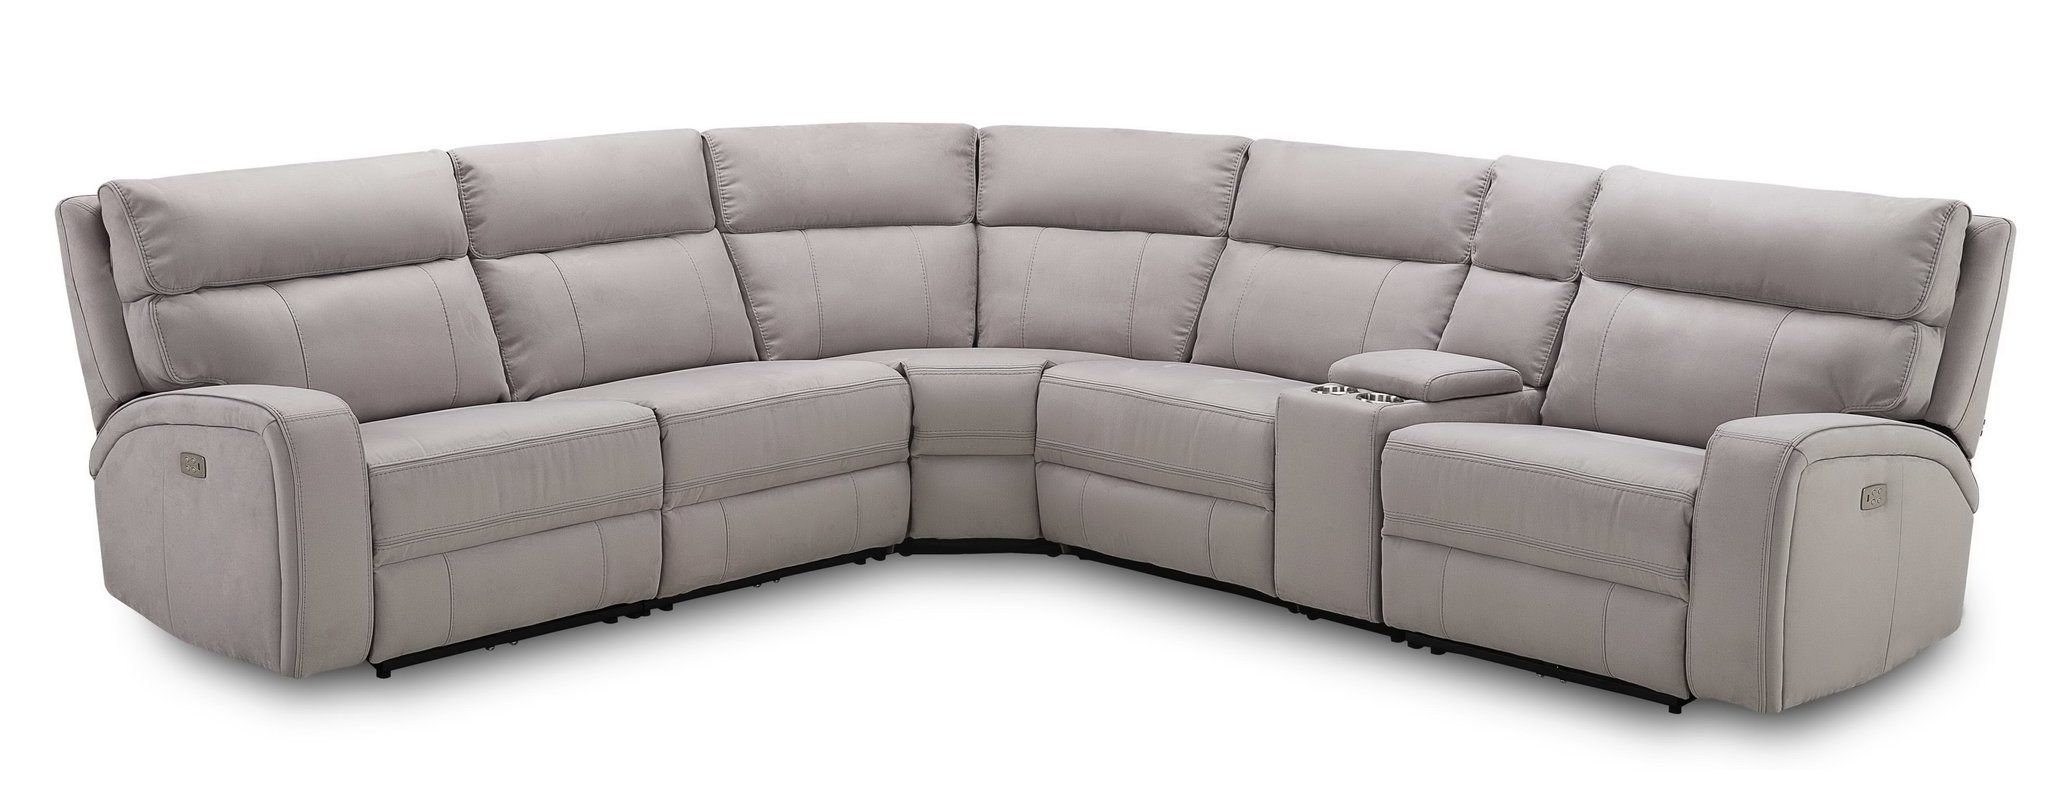 Arty 135 Wide Faux Leather Right Hand Facing Reclining Corner Sectional Fabric Sectional Sofas Fabric Sectional Leather Reclining Sectional